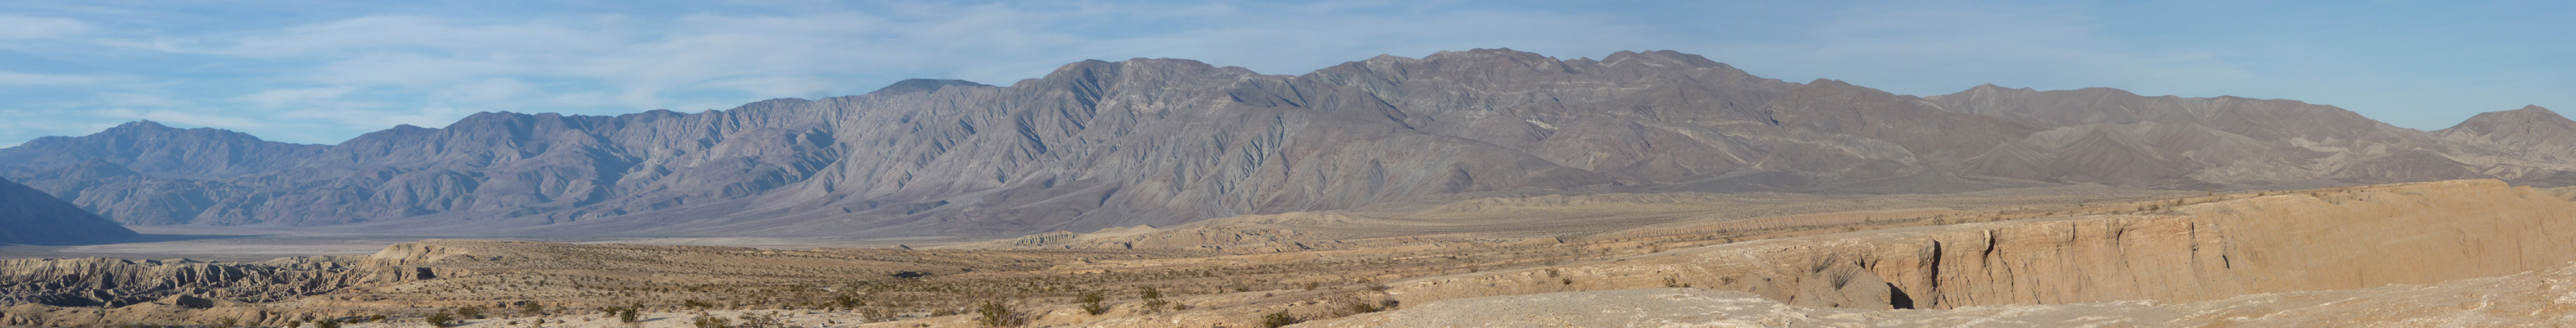 Foss Point looking north Anza Borrego